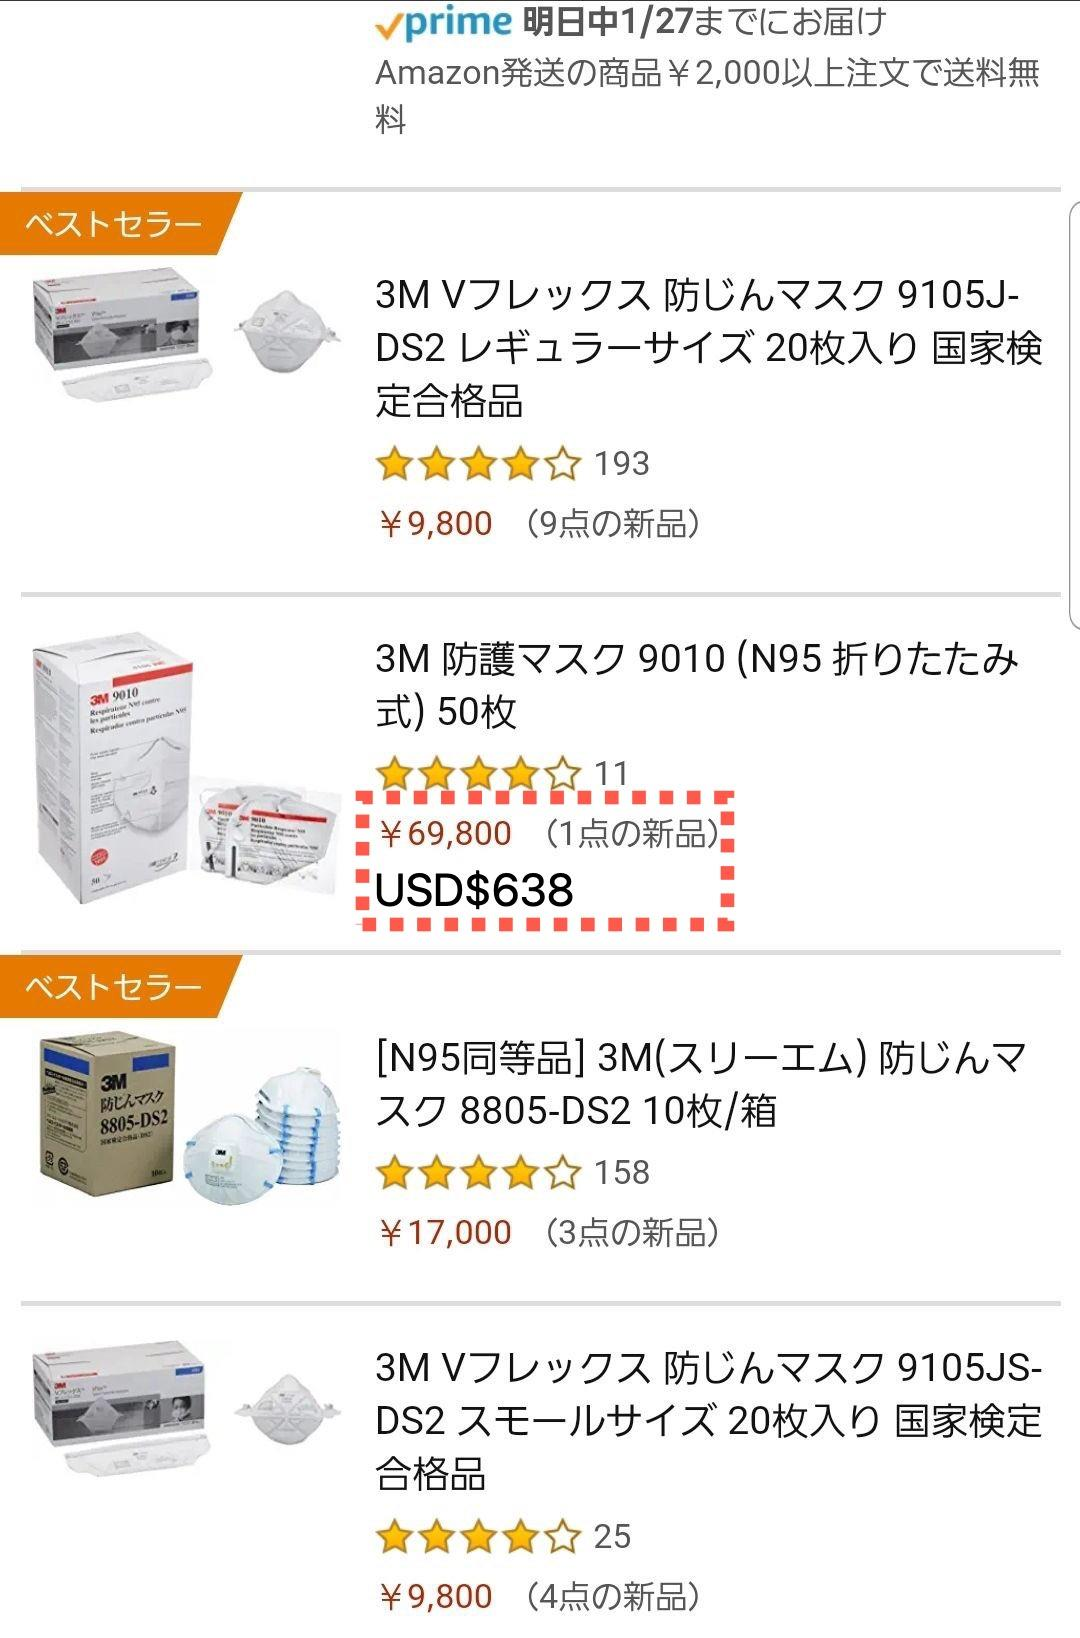 n95 mask sold by amazon